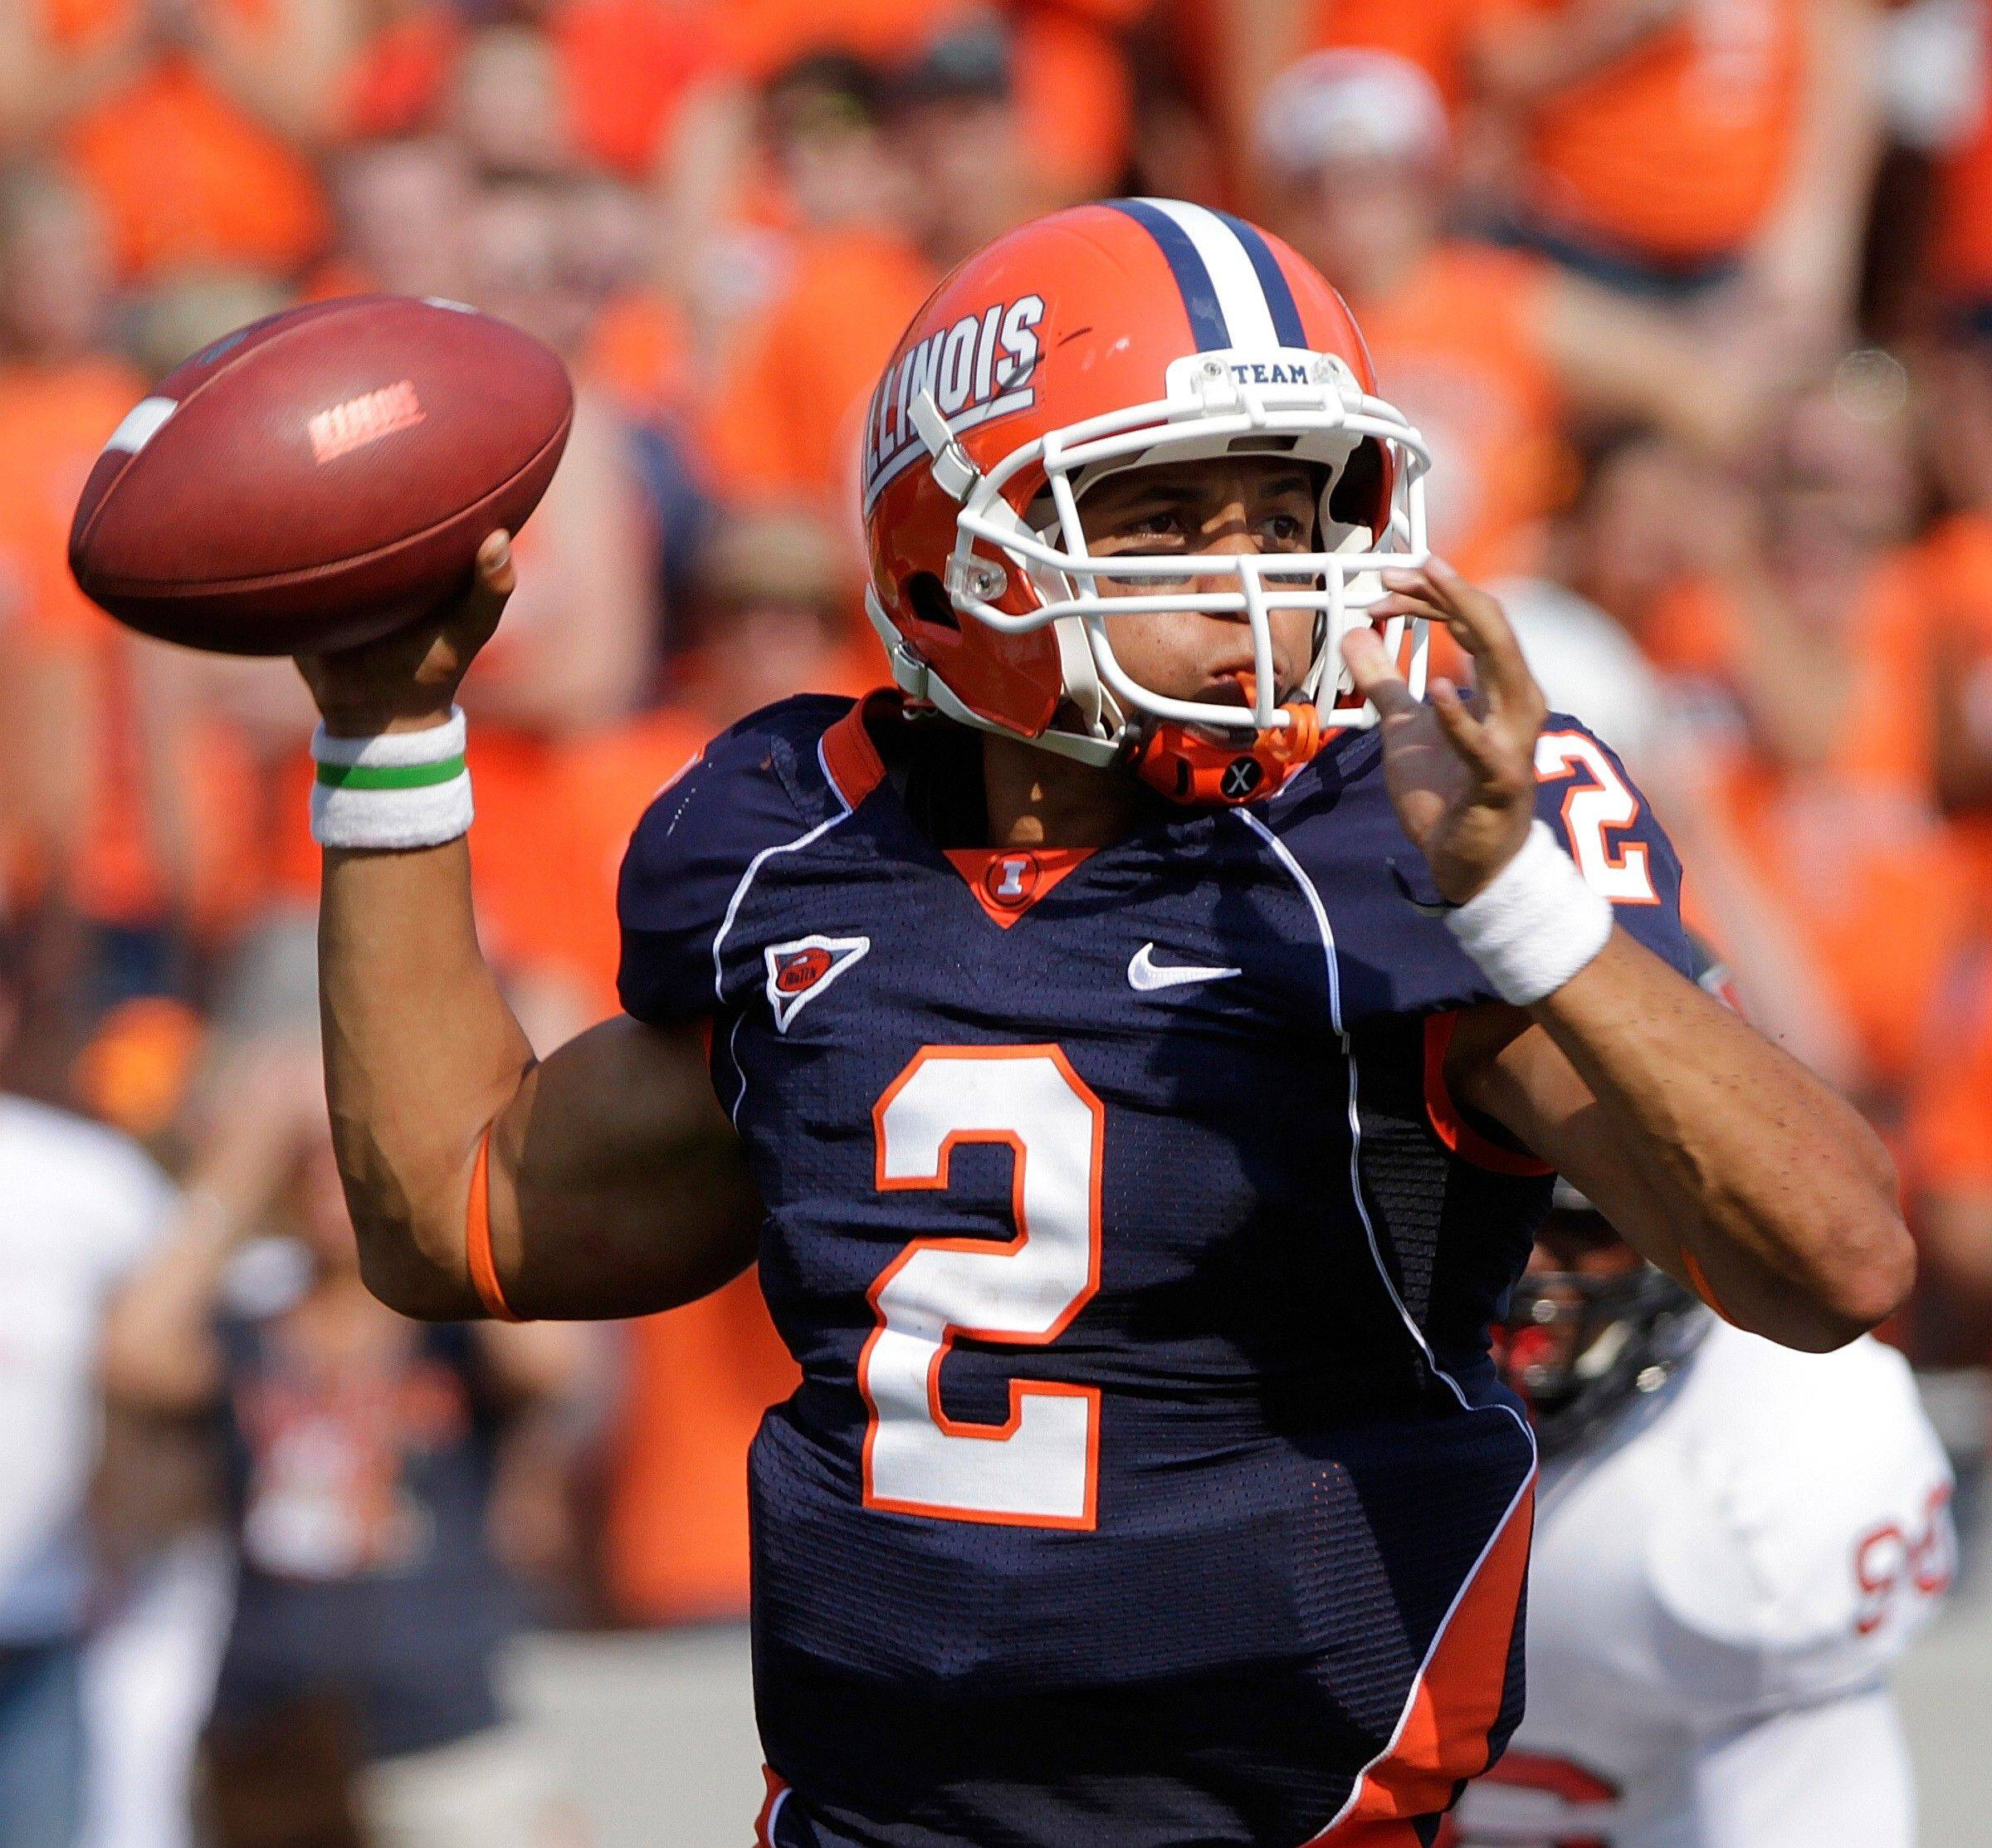 Illinois quarterback Nathan Scheelhaase drops back to pass during the first half Saturday.